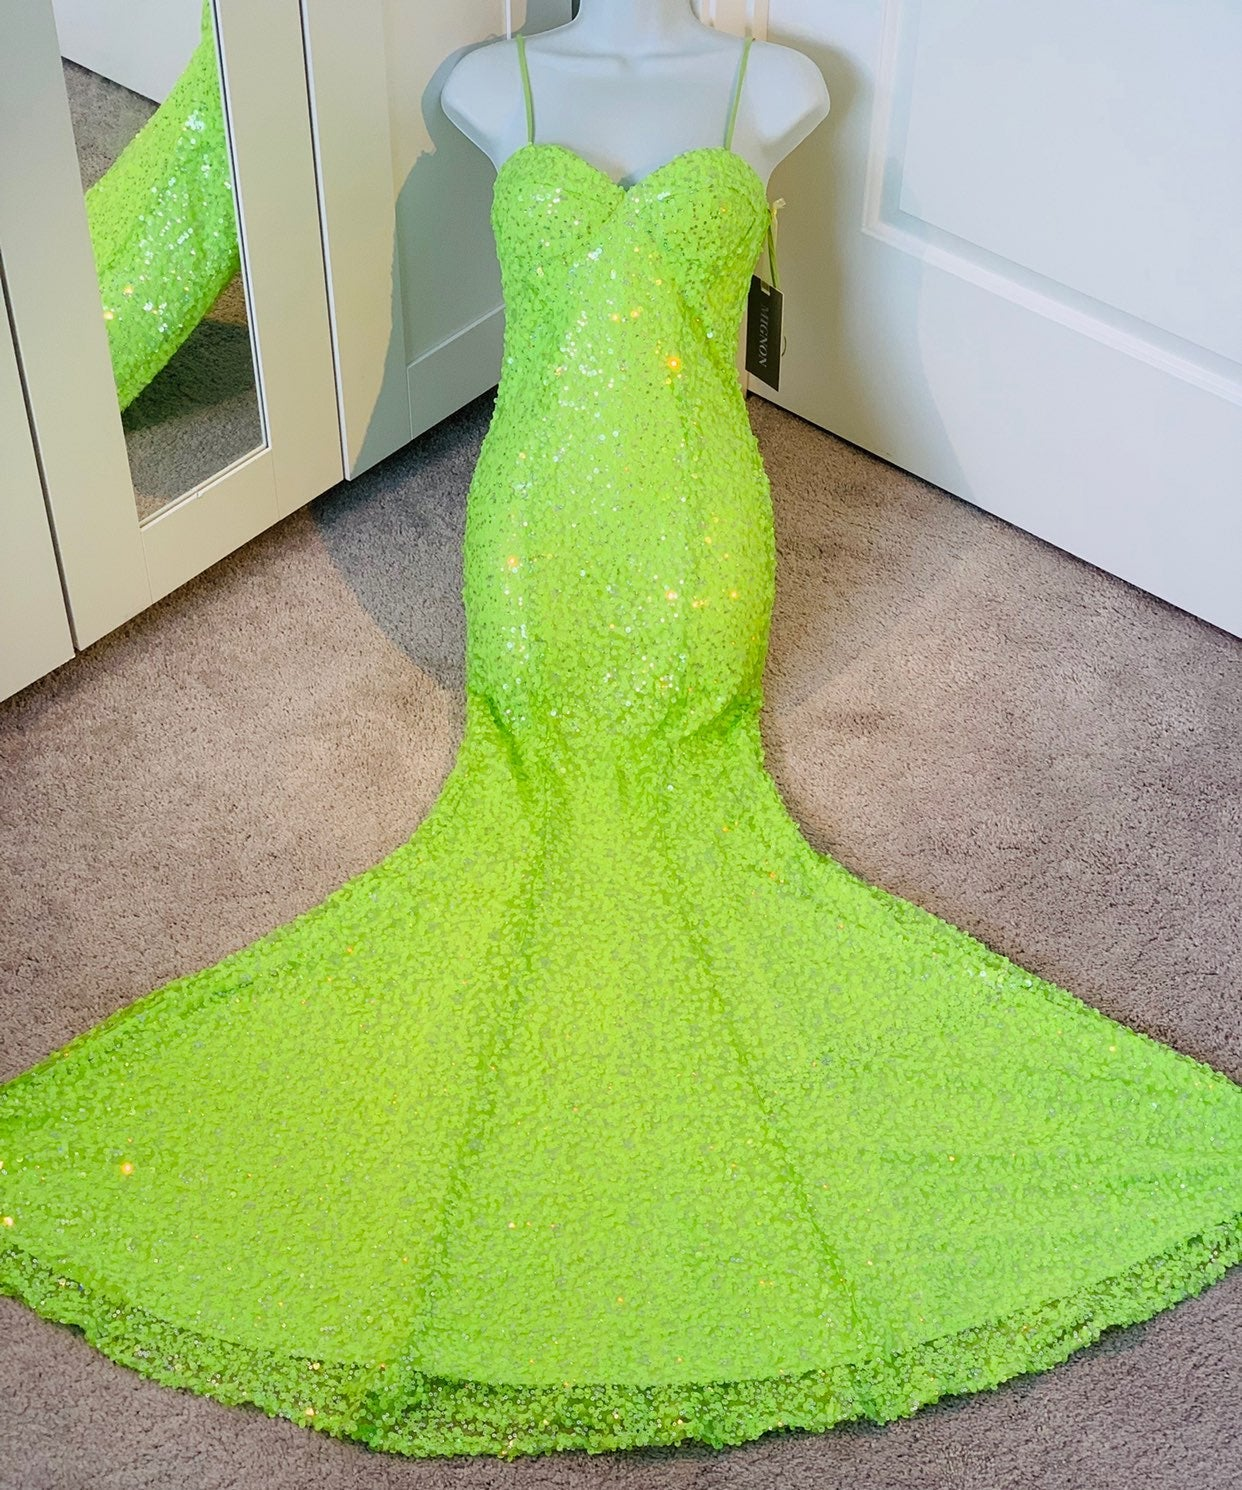 Mignon VM1258 Lime Sequins Gown Dress NW